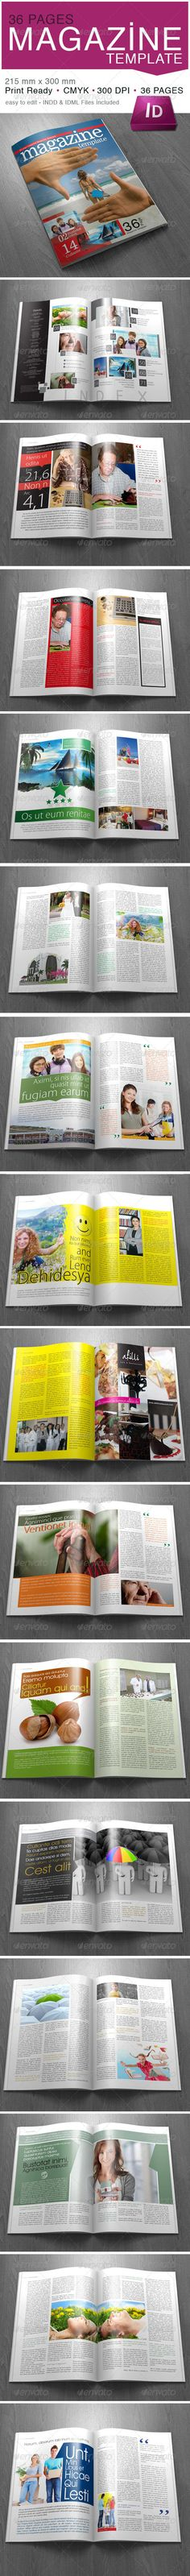 36 Page Magazine Template  - GraphicRiver Item for Sale